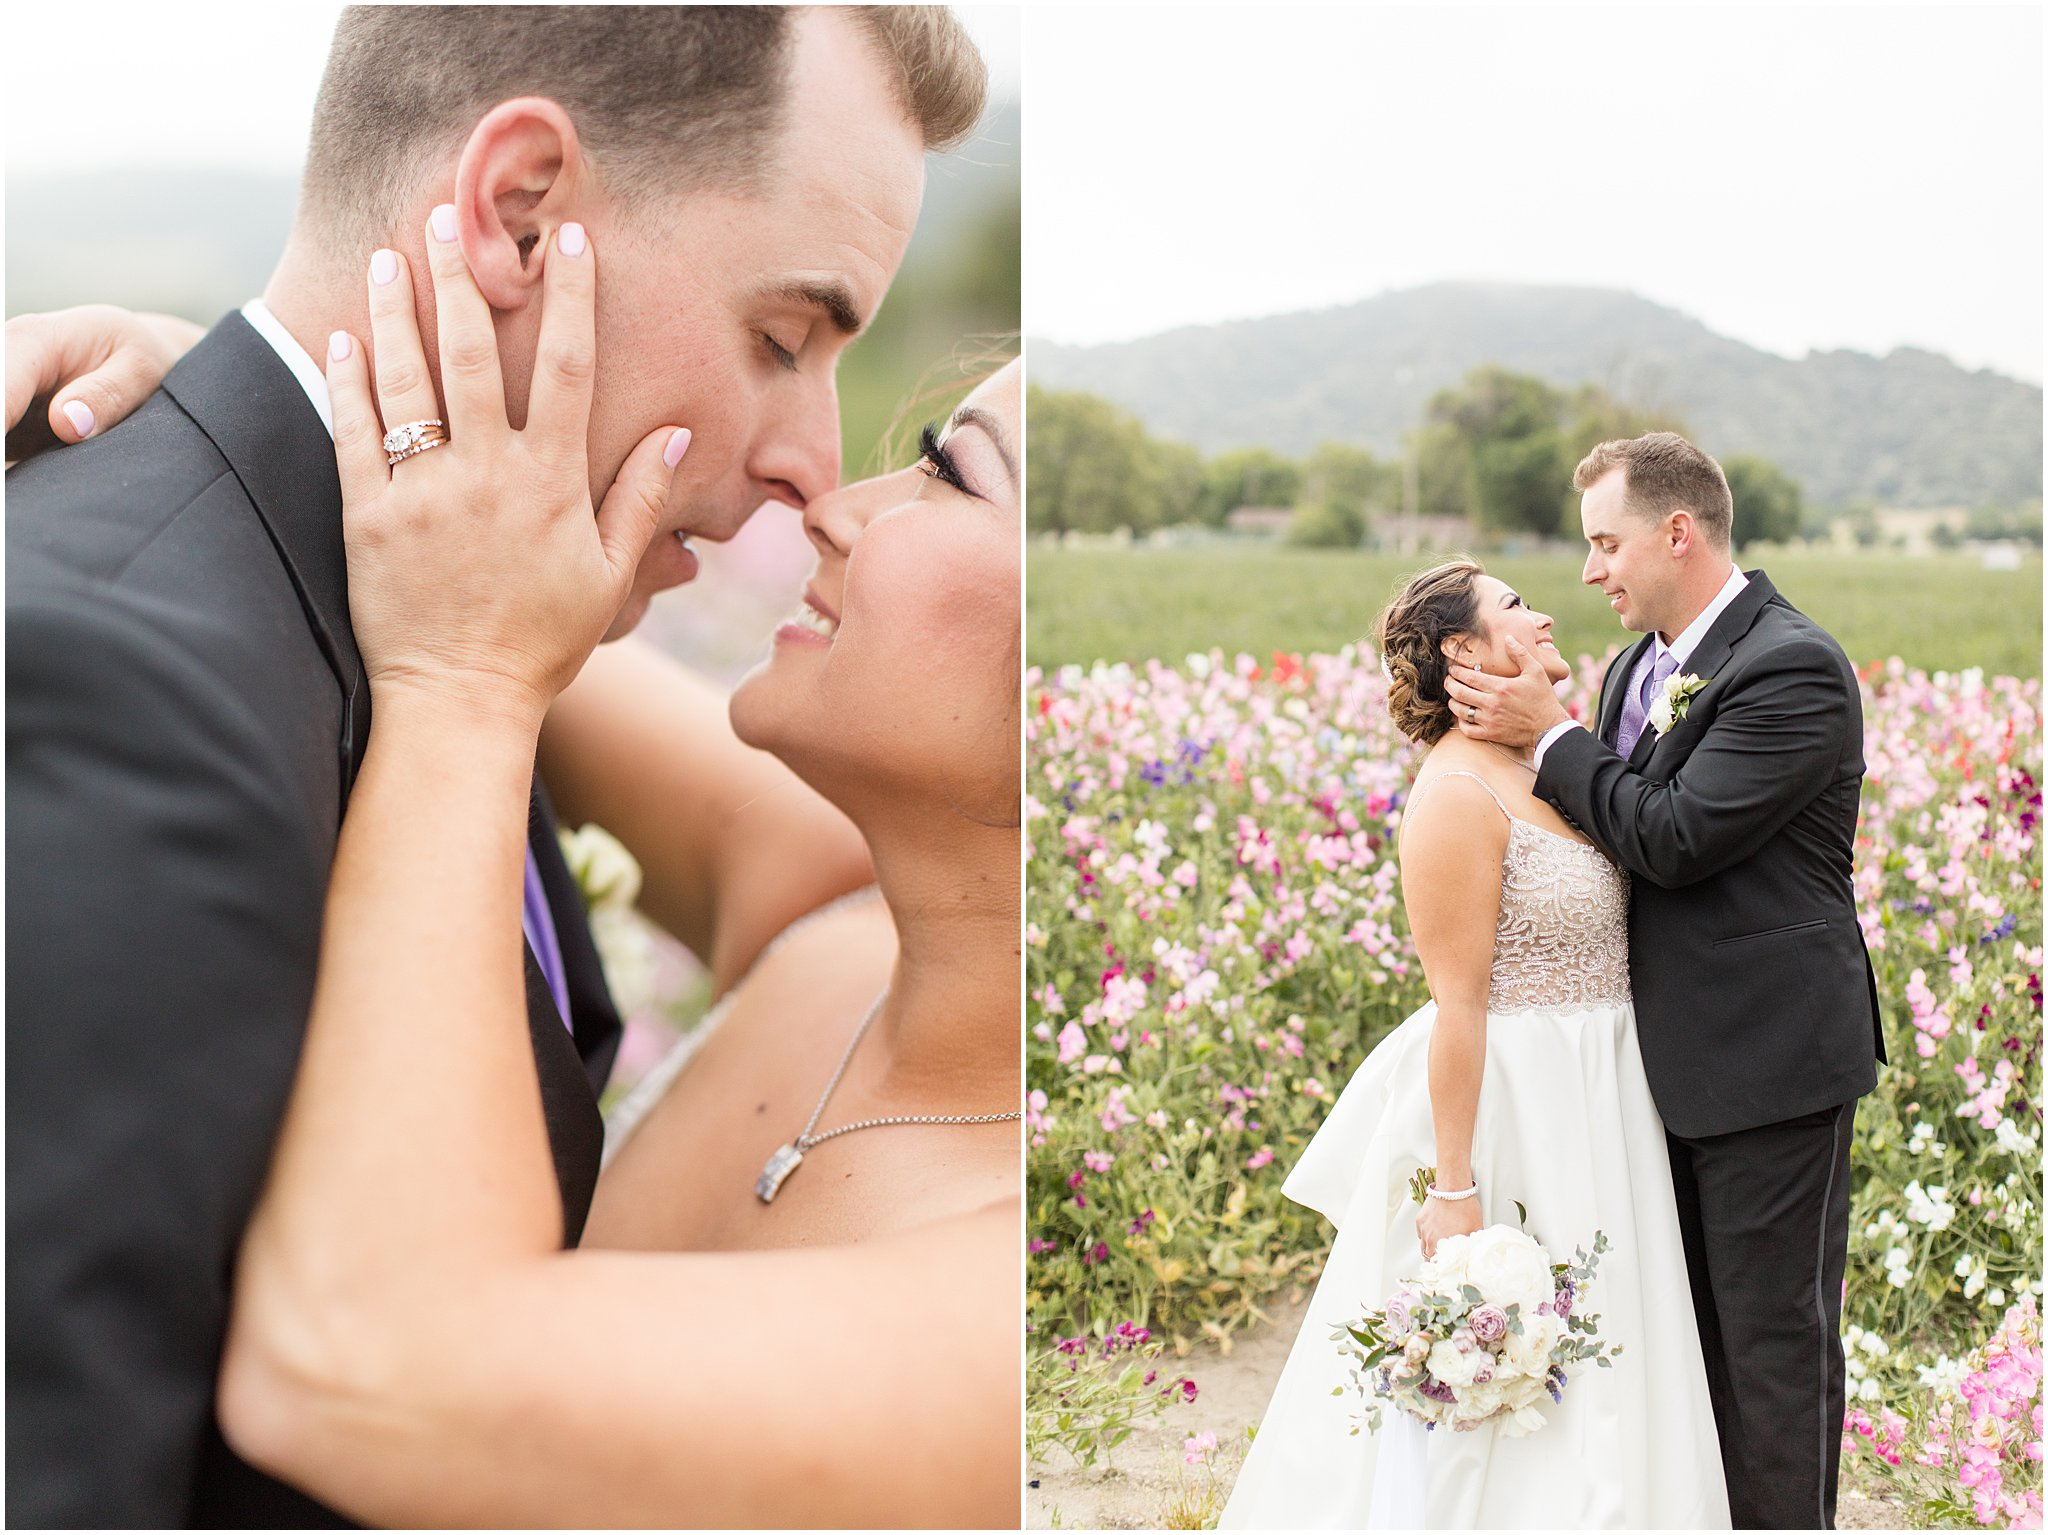 2019 wedding san juan bautista hacienda de leal vineyards bay area wedding photographer_0077.jpg